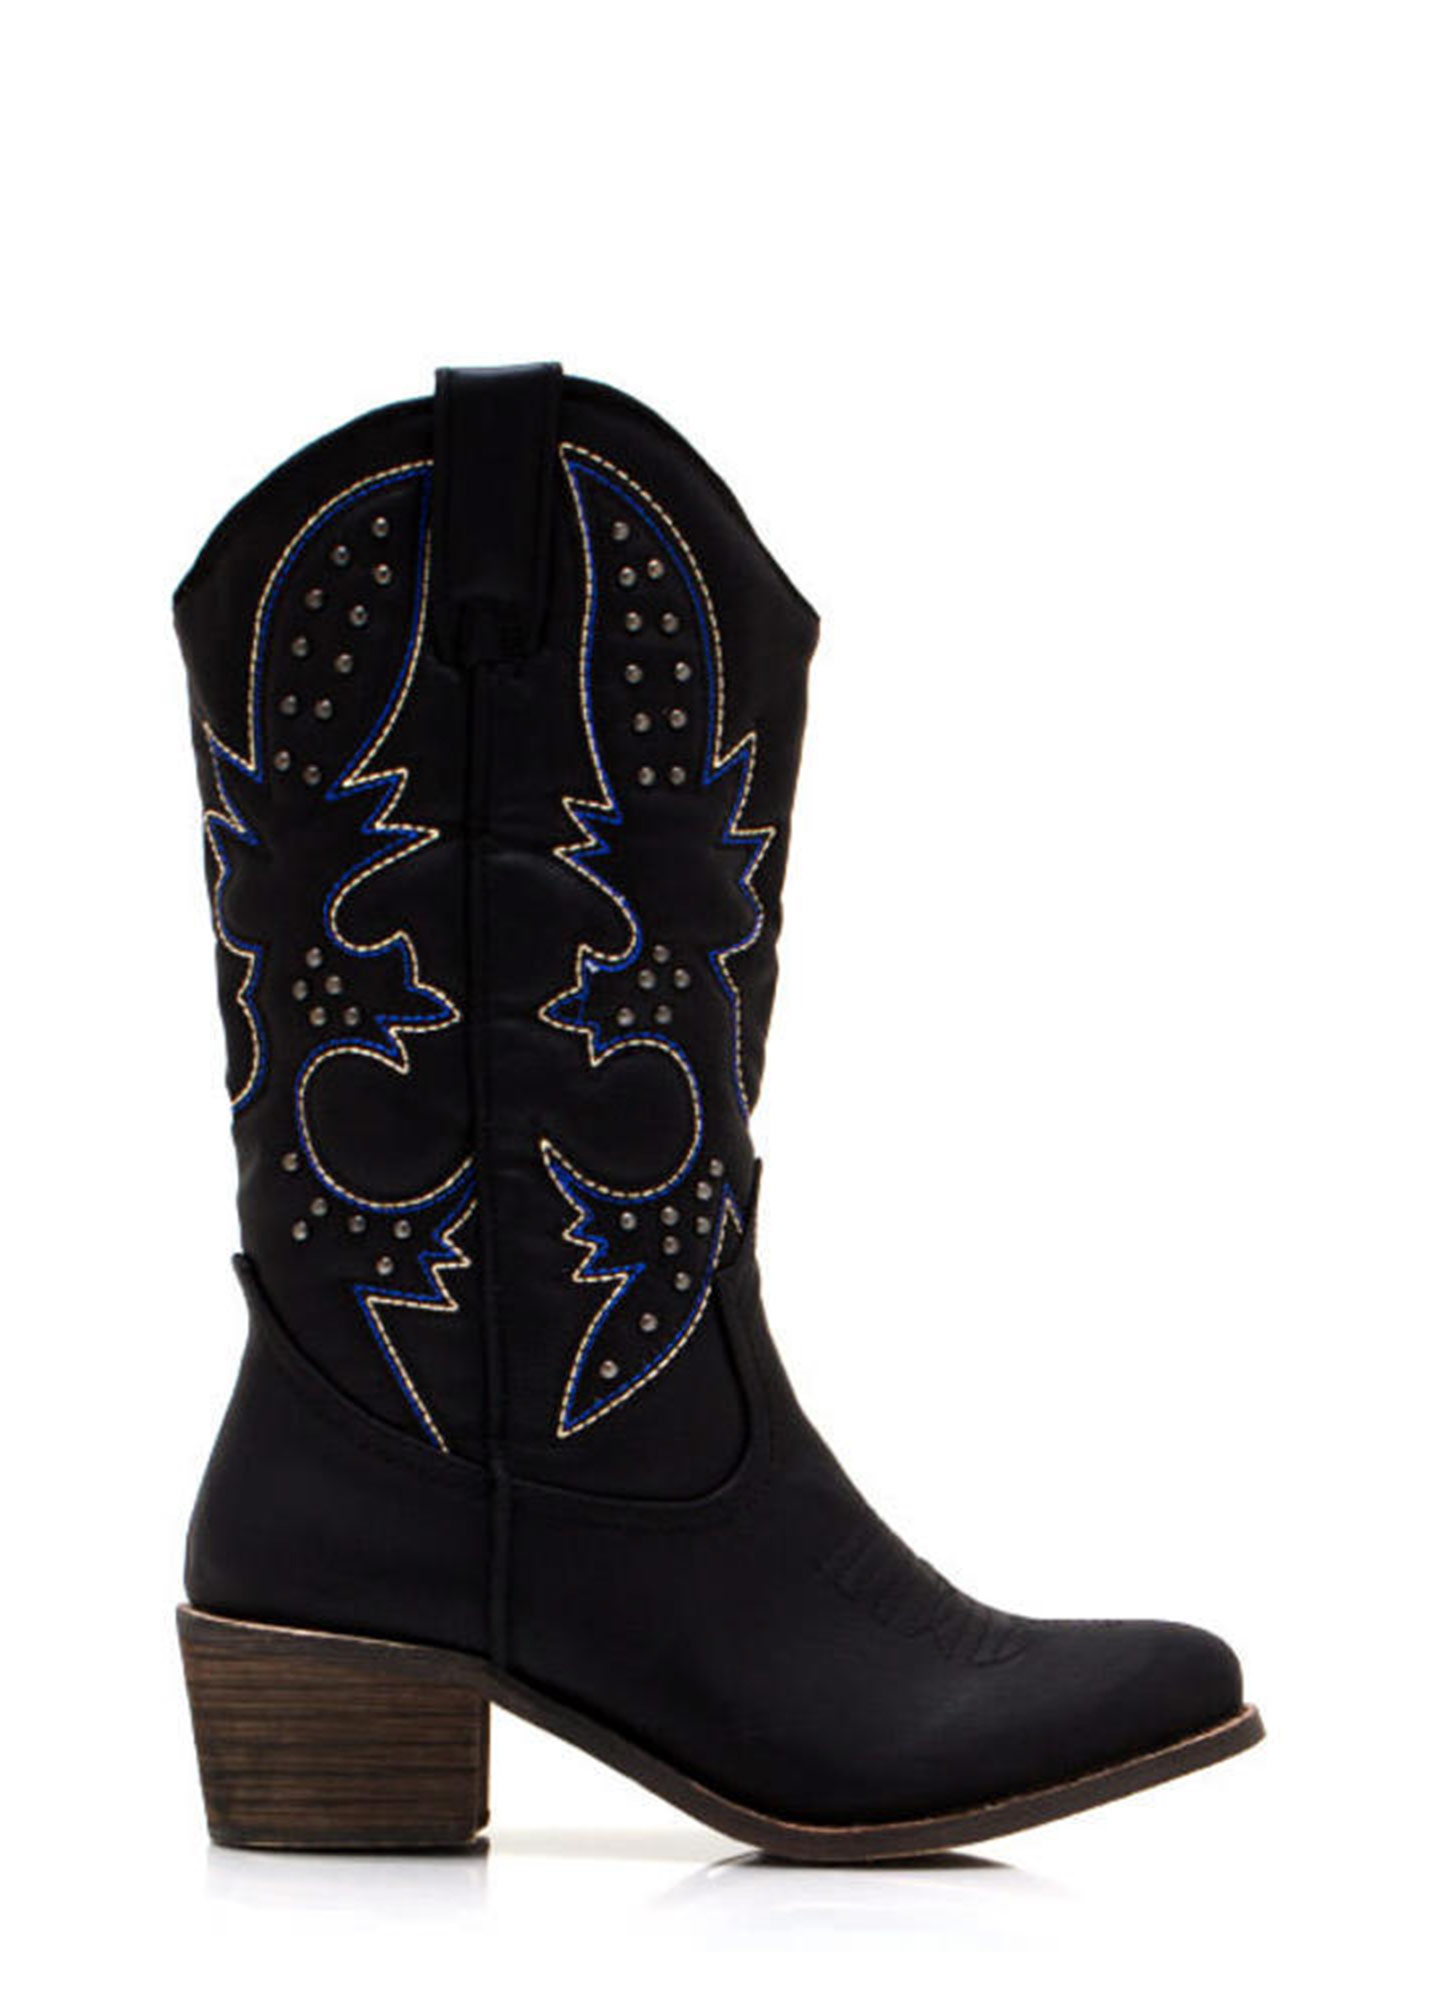 Get Stitches Studded Cowgirl Boots BLACK (Final Sale)